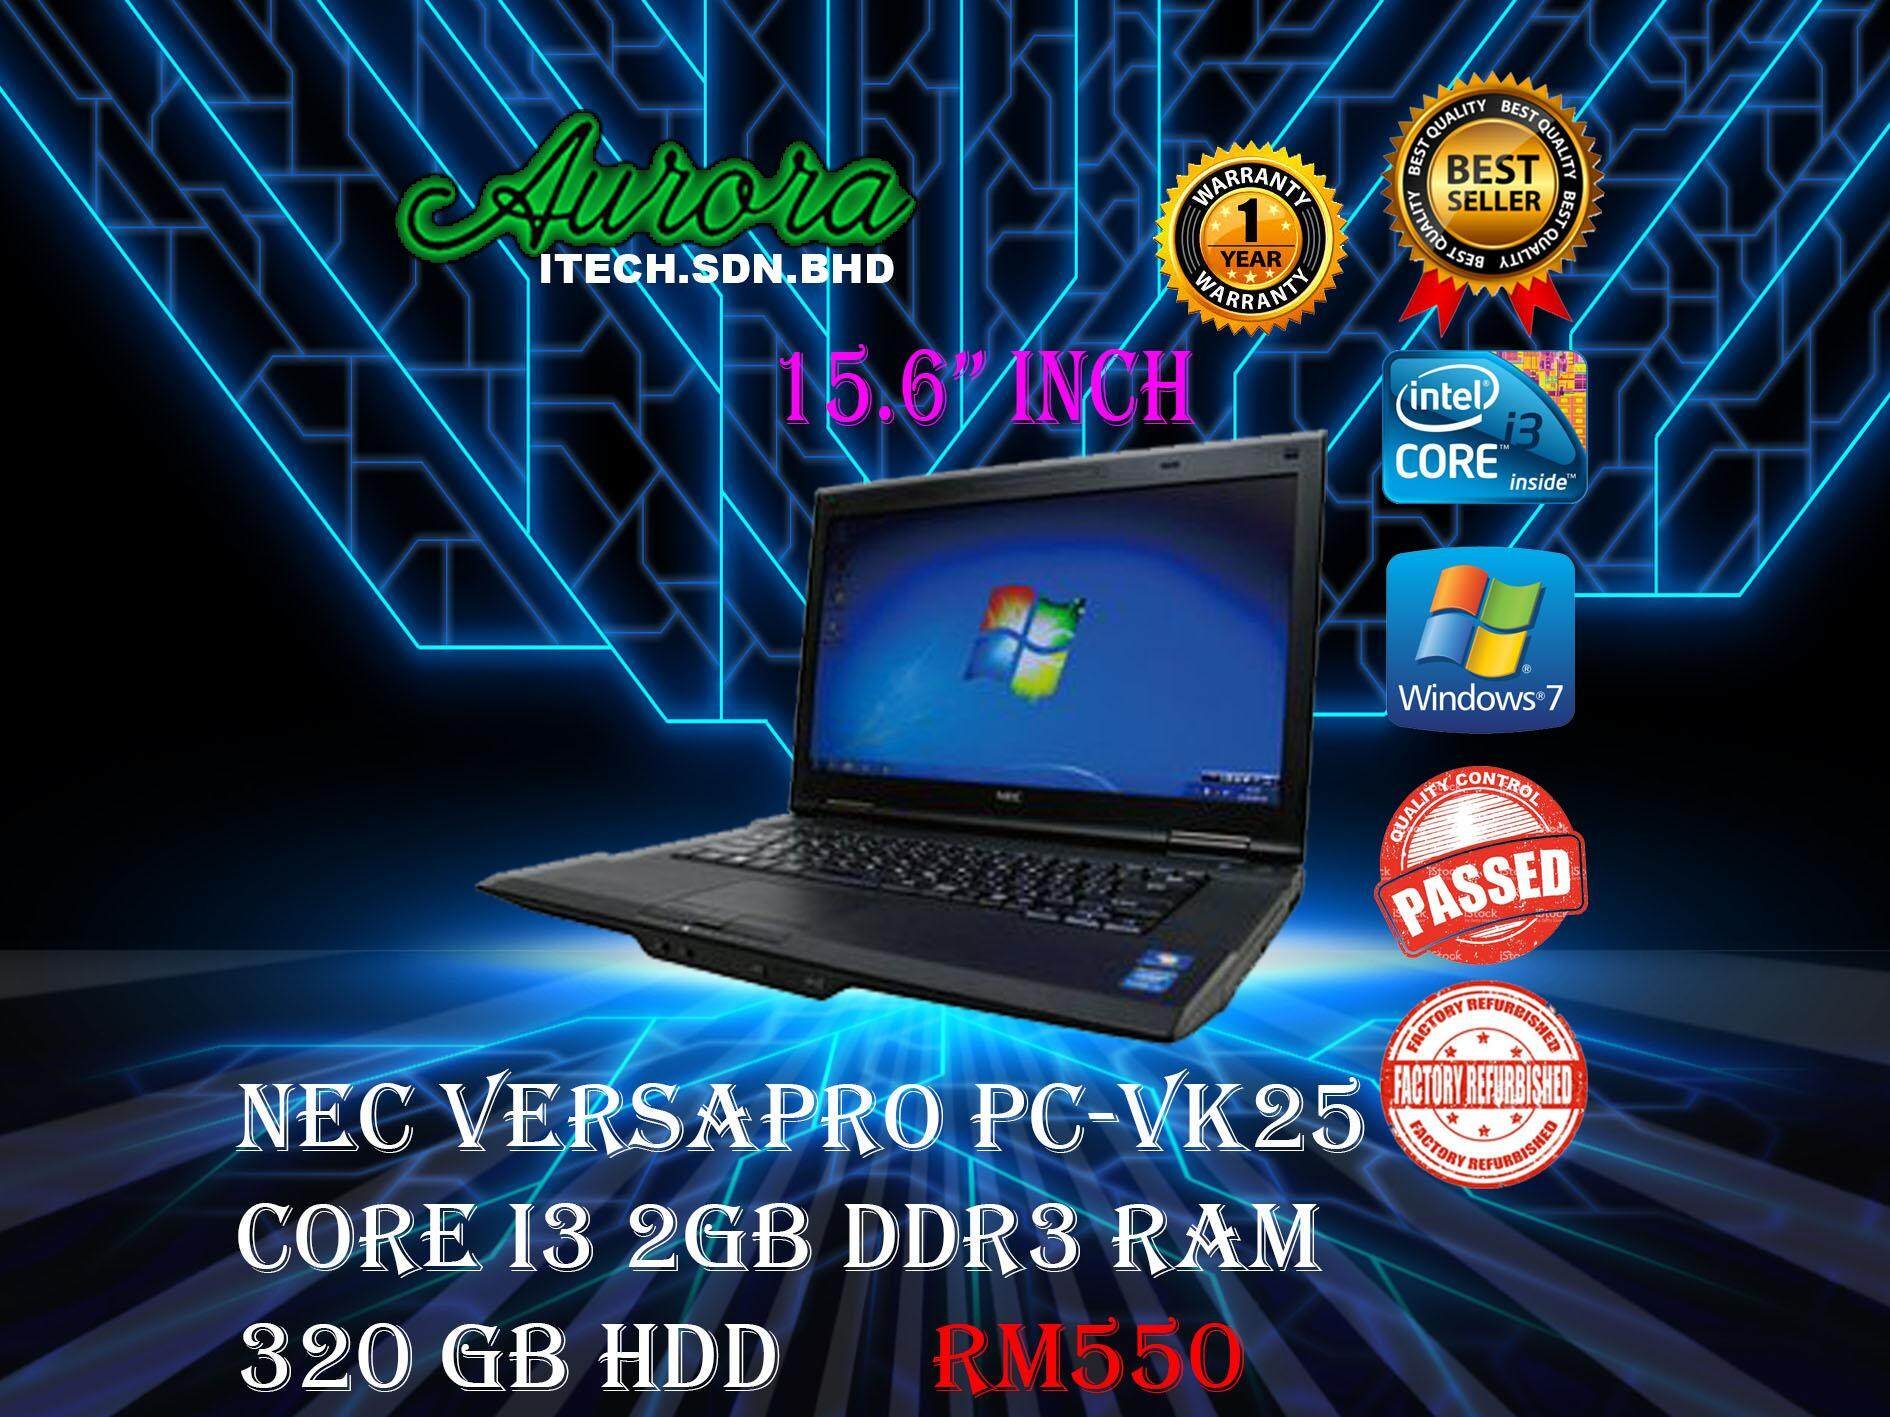 (REFURBISHED)NEC VersaPro VK25  / Core i3 3th Gen / 2GB DDR3 RAM / 320GB HDD / 15.6ich Screen /1 Year Warranty/ Free Mouse & Bag Malaysia